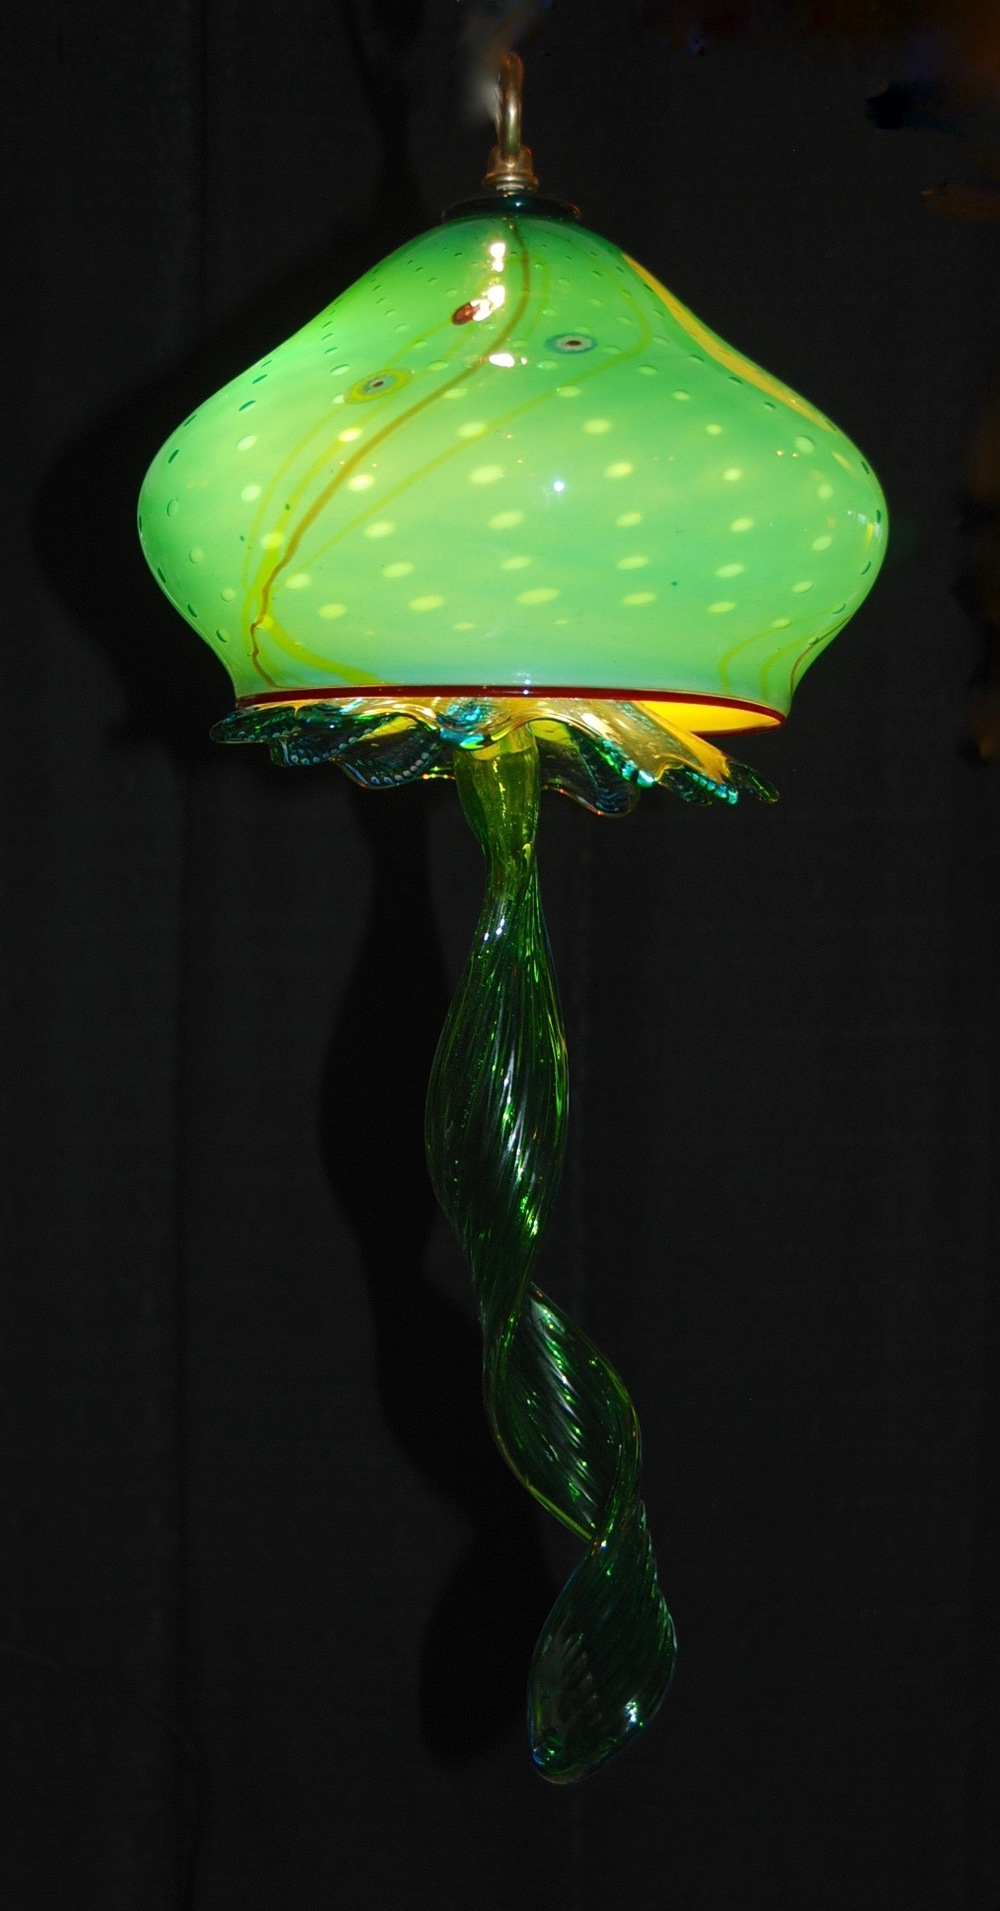 Jellyfish for the Ritzels  strini art glass. 02.jpg